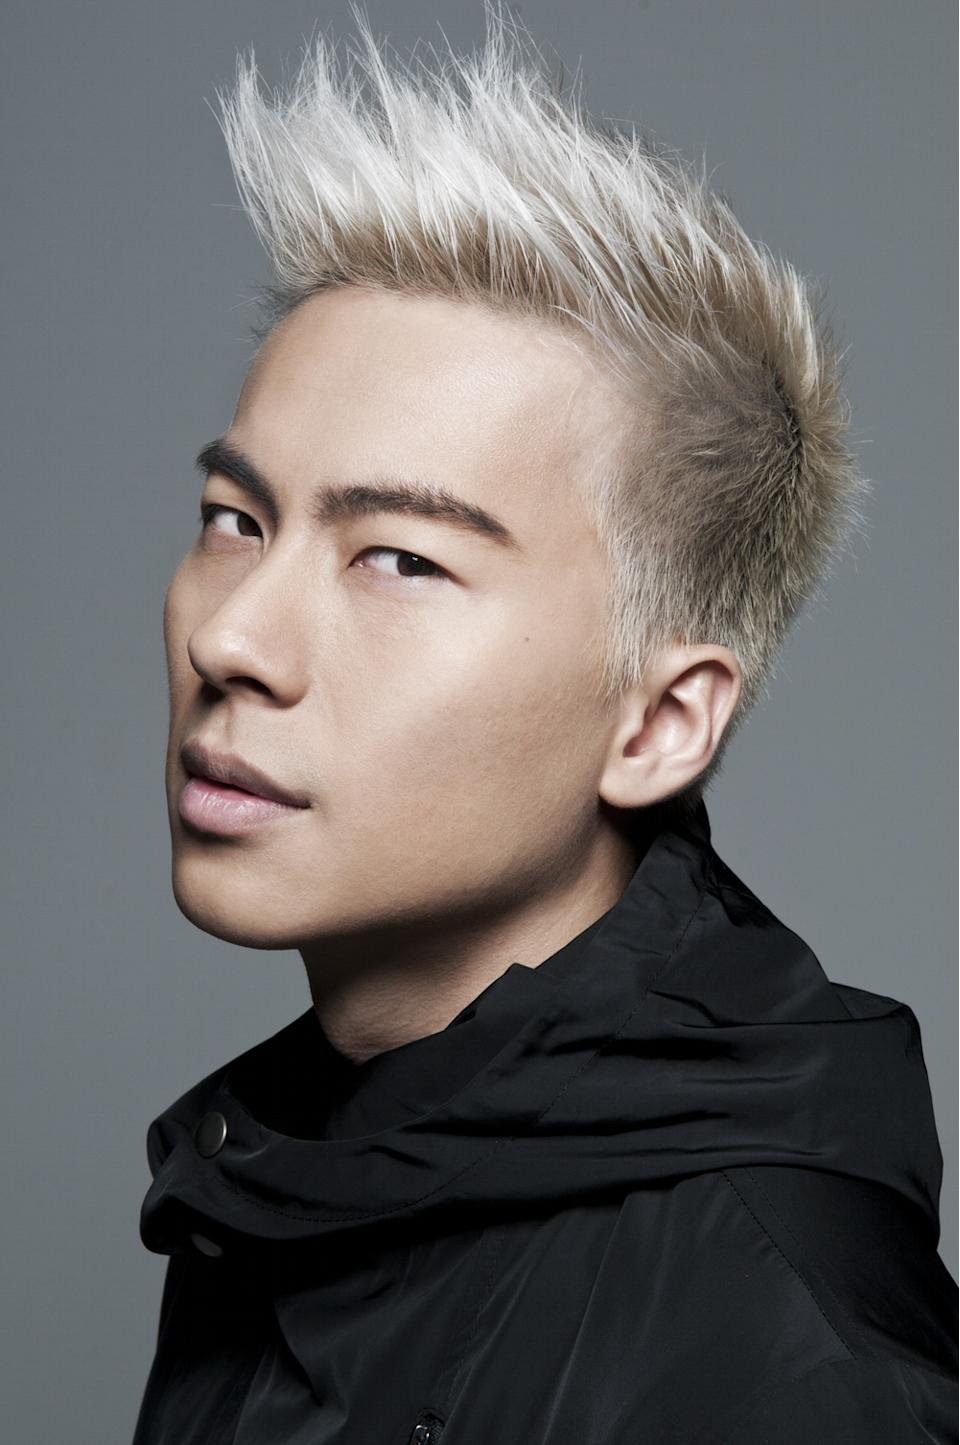 """<b><p>Nat Ho, 27</p></b> <b><p>Singer-songwriter</p></b> <br> <p>Nat Ho is a familiar face in Singapore's Entertainment industry, having cut his teeth as Model as well as Actor in Mediacorp for four years before finally leaving to pursue his First Love: Music.</p> <br> <p>Classically-trained in Piano since the age of 3, Music was a constant companion throughout his life.</p> <br> <p>He honed his craft as a performer in school and also in the Singapore Armed Forces Music and Drama Company, where he was awarded the """"Most Promising Artiste"""" Award.</p> <br> <p>Nat's official initiation into the Industry earned him a """"Best Newcomer"""" nomination in Mediacorp's Star Awards 2007 as well as a """"Favourite Male TV Character"""" Award in Mediacorp's Star Awards 2010.</p> <br> <p>2012 marks the year of Nat Ho as a Singer and Songwriter, having released his self-composed debut EP, """"Unleashed"""" to much industry buzz.</p> <br> <p>Apart from his own career aspirations, Nat is also a strong champion of local creative talents, and hopes that Singapore's creative industry can one day make its mark on the world map.</p> <br> <p>Stylist/art director - Zachary Goh</p> <p>Photographer - Alvin Tang</p>"""